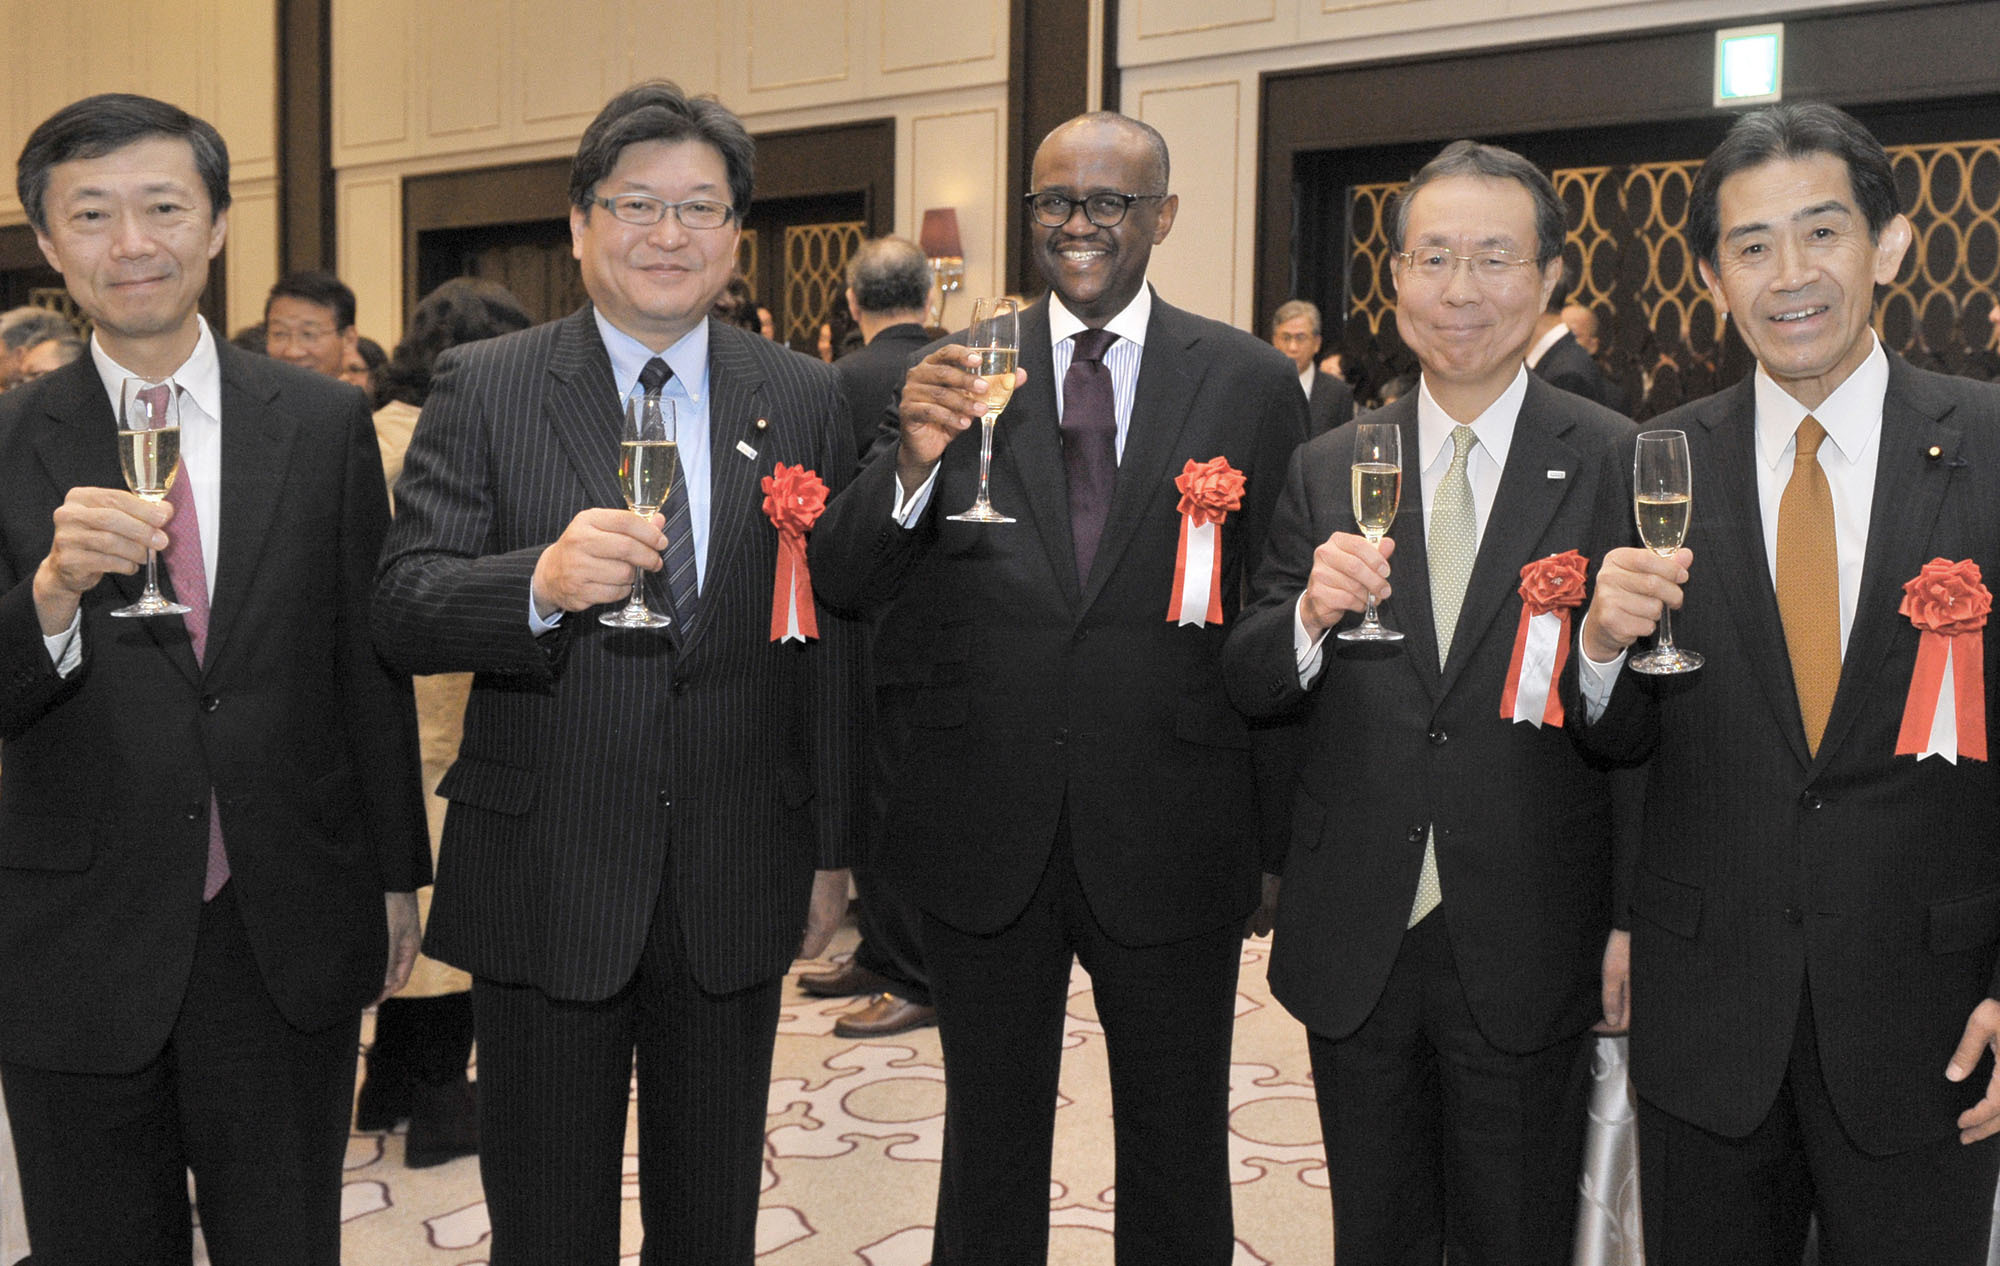 Kenya's Ambassador Solomon Karanja Maina (center) prepares for a toast with, from left, the Ministry of Foreign Affairs Director-General for African Affairs Department Norio Maruyama; Deputy Chief Cabinet Secretary Koichi Hagiuda; Mizuho Bank Ltd. President and CEO Nobuhide Hayashi; and Chairman of the Japan-AU Parliamentary Friendship Association Ichiro Aisawa during a reception to celebrate the 53rd anniversary of Kenya's independence at the Tokyo Marriott Hotel on Dec. 12. | YOSHIAKI MIURA